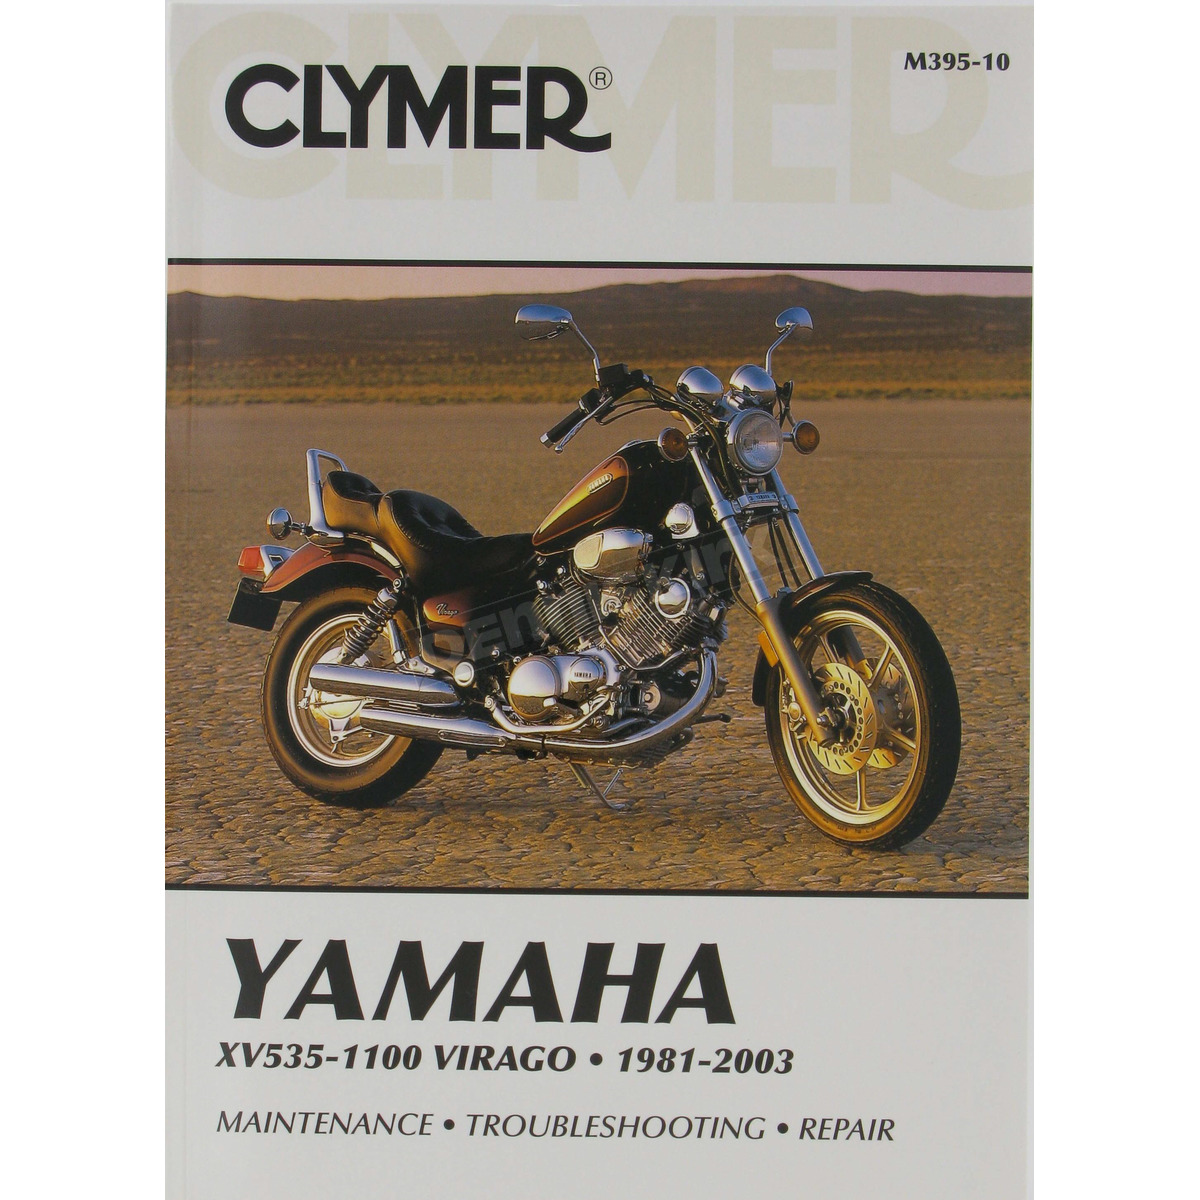 Clymer Yamaha Repair Manual - M395-10